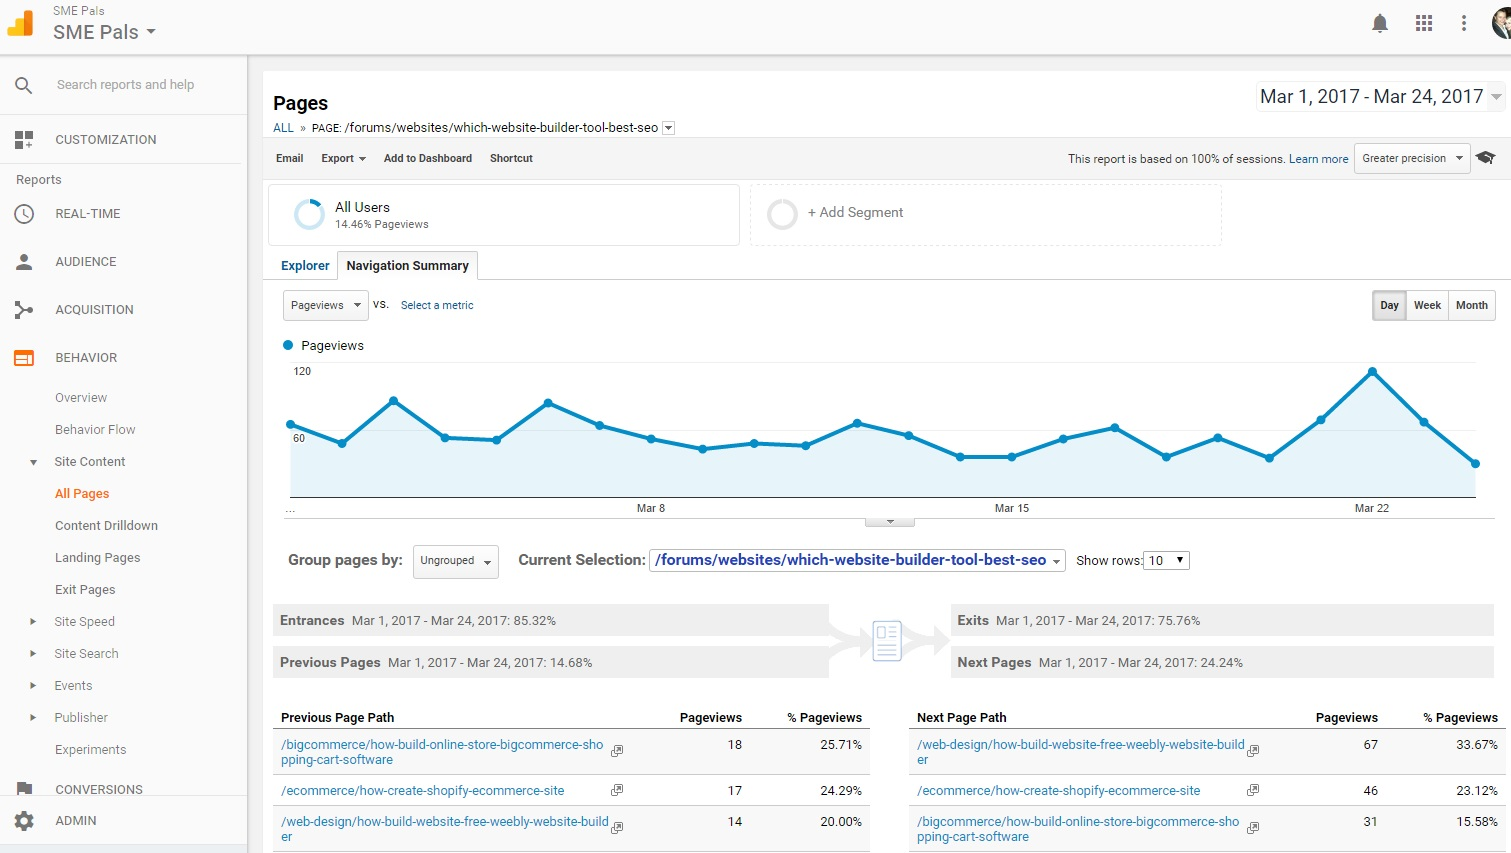 The Google analytics navigation summary can provide valuable SEO insight